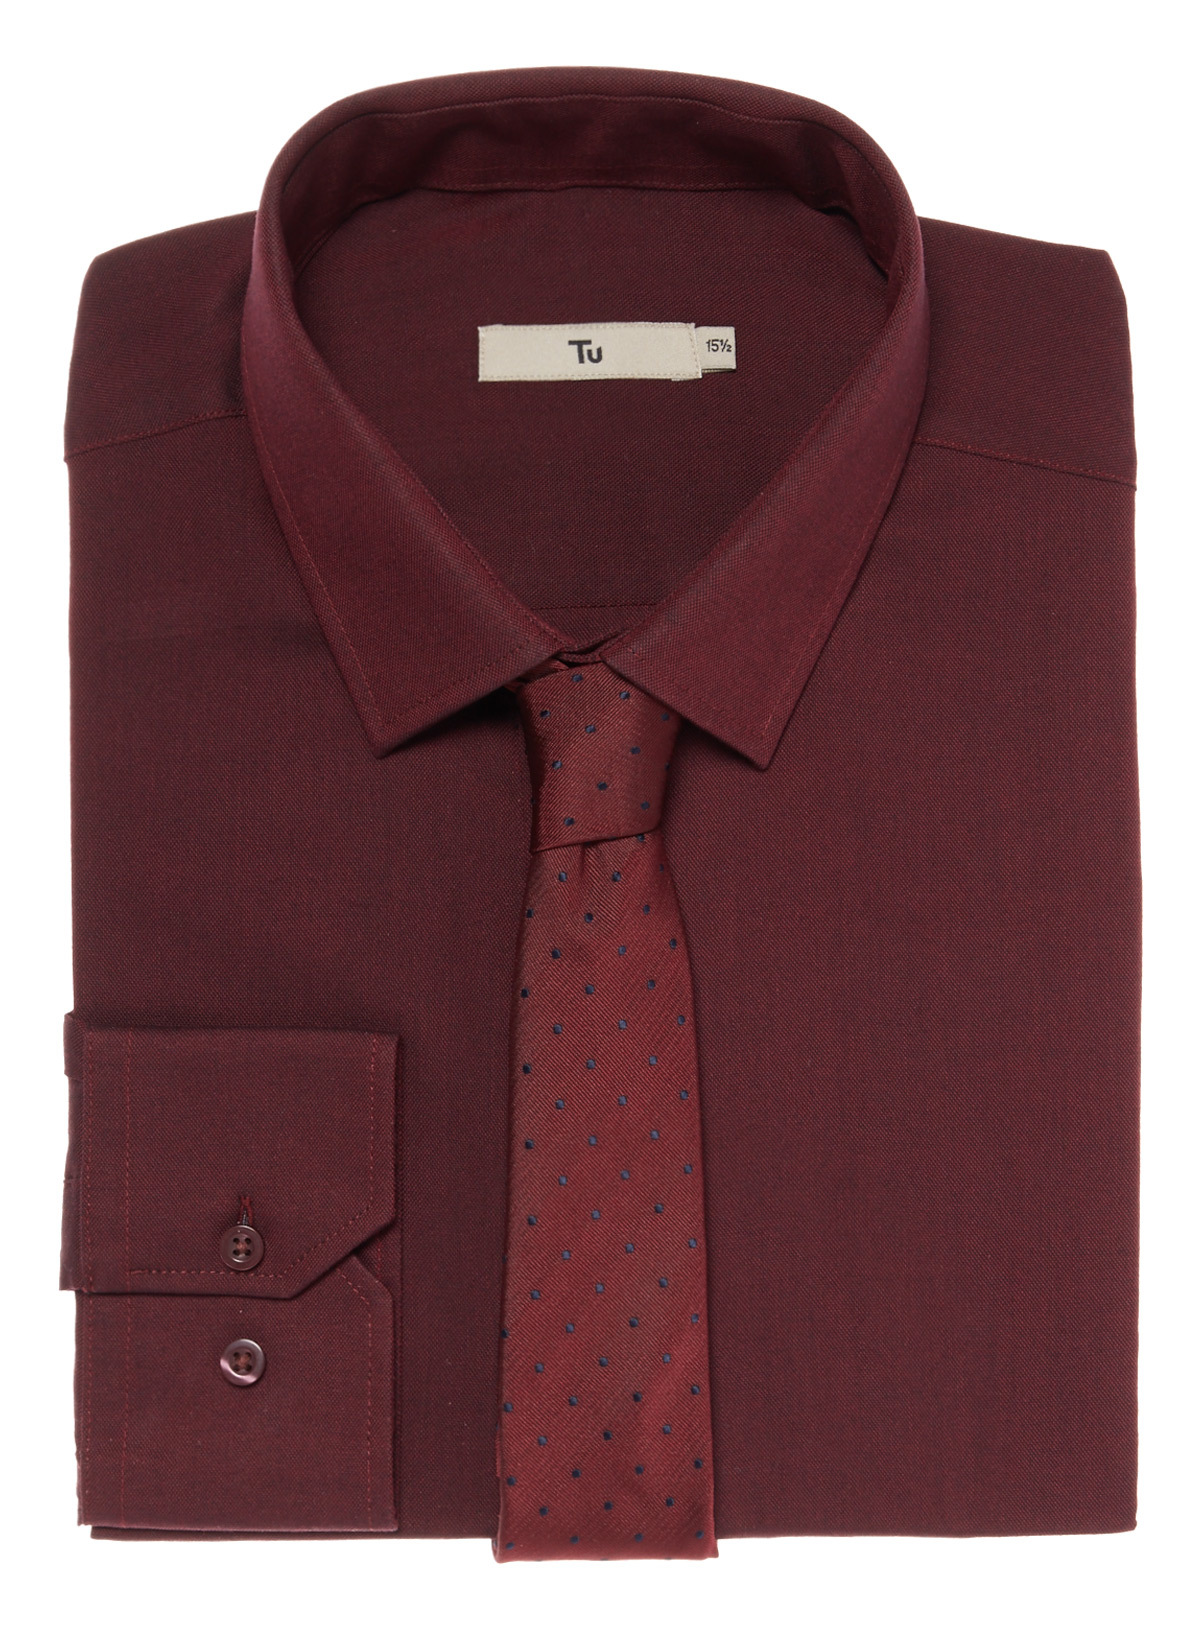 Mens Dark Red Shirt Tie Set | Tu clothing